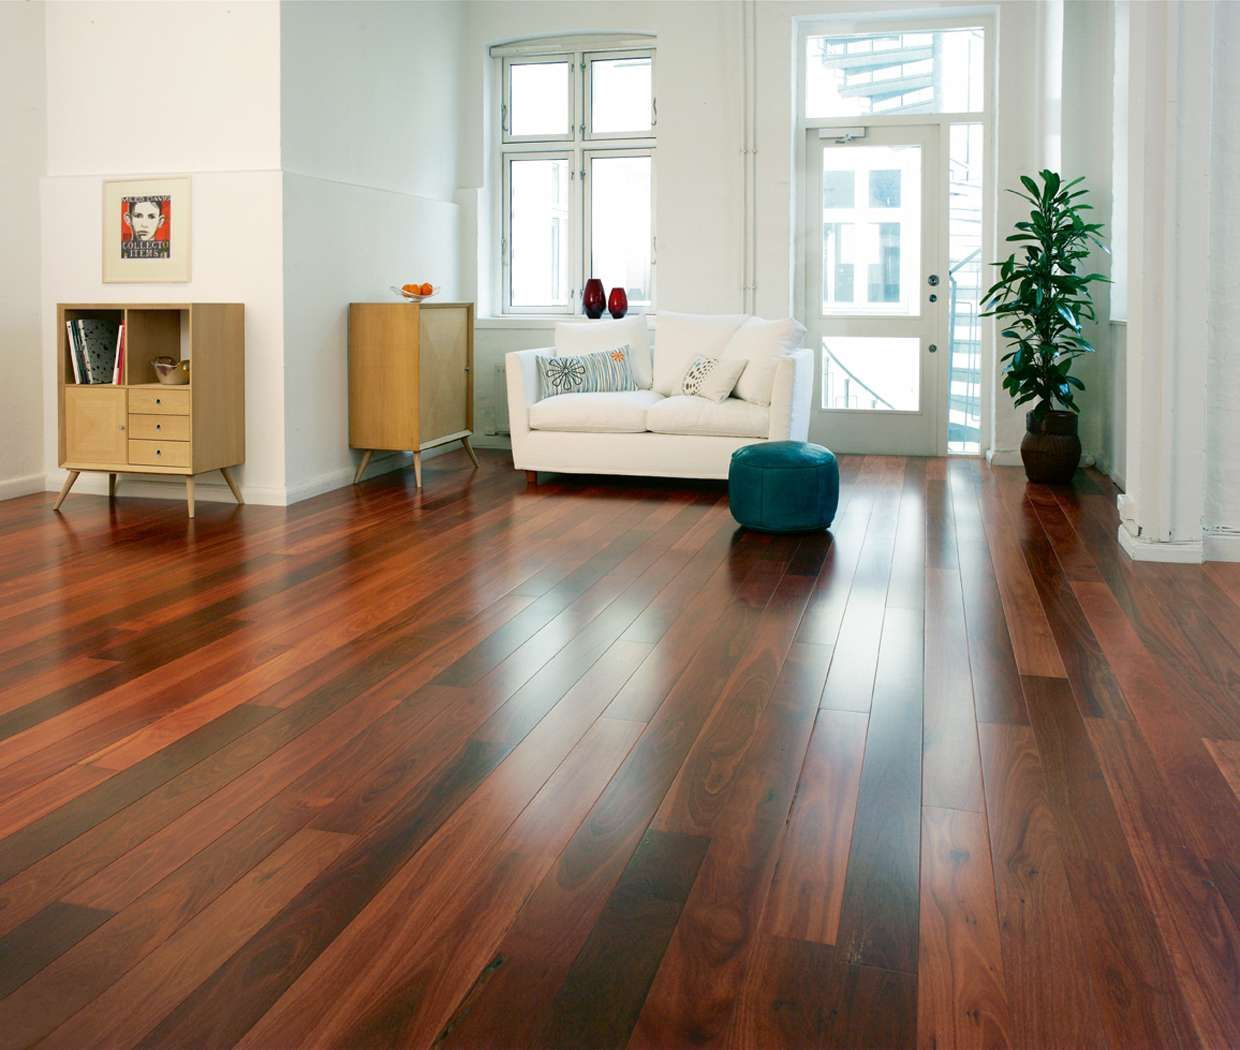 What Better Engineered Hardwood Or Laminate: Here's Why Timber Is The Better Flooring Option Compared